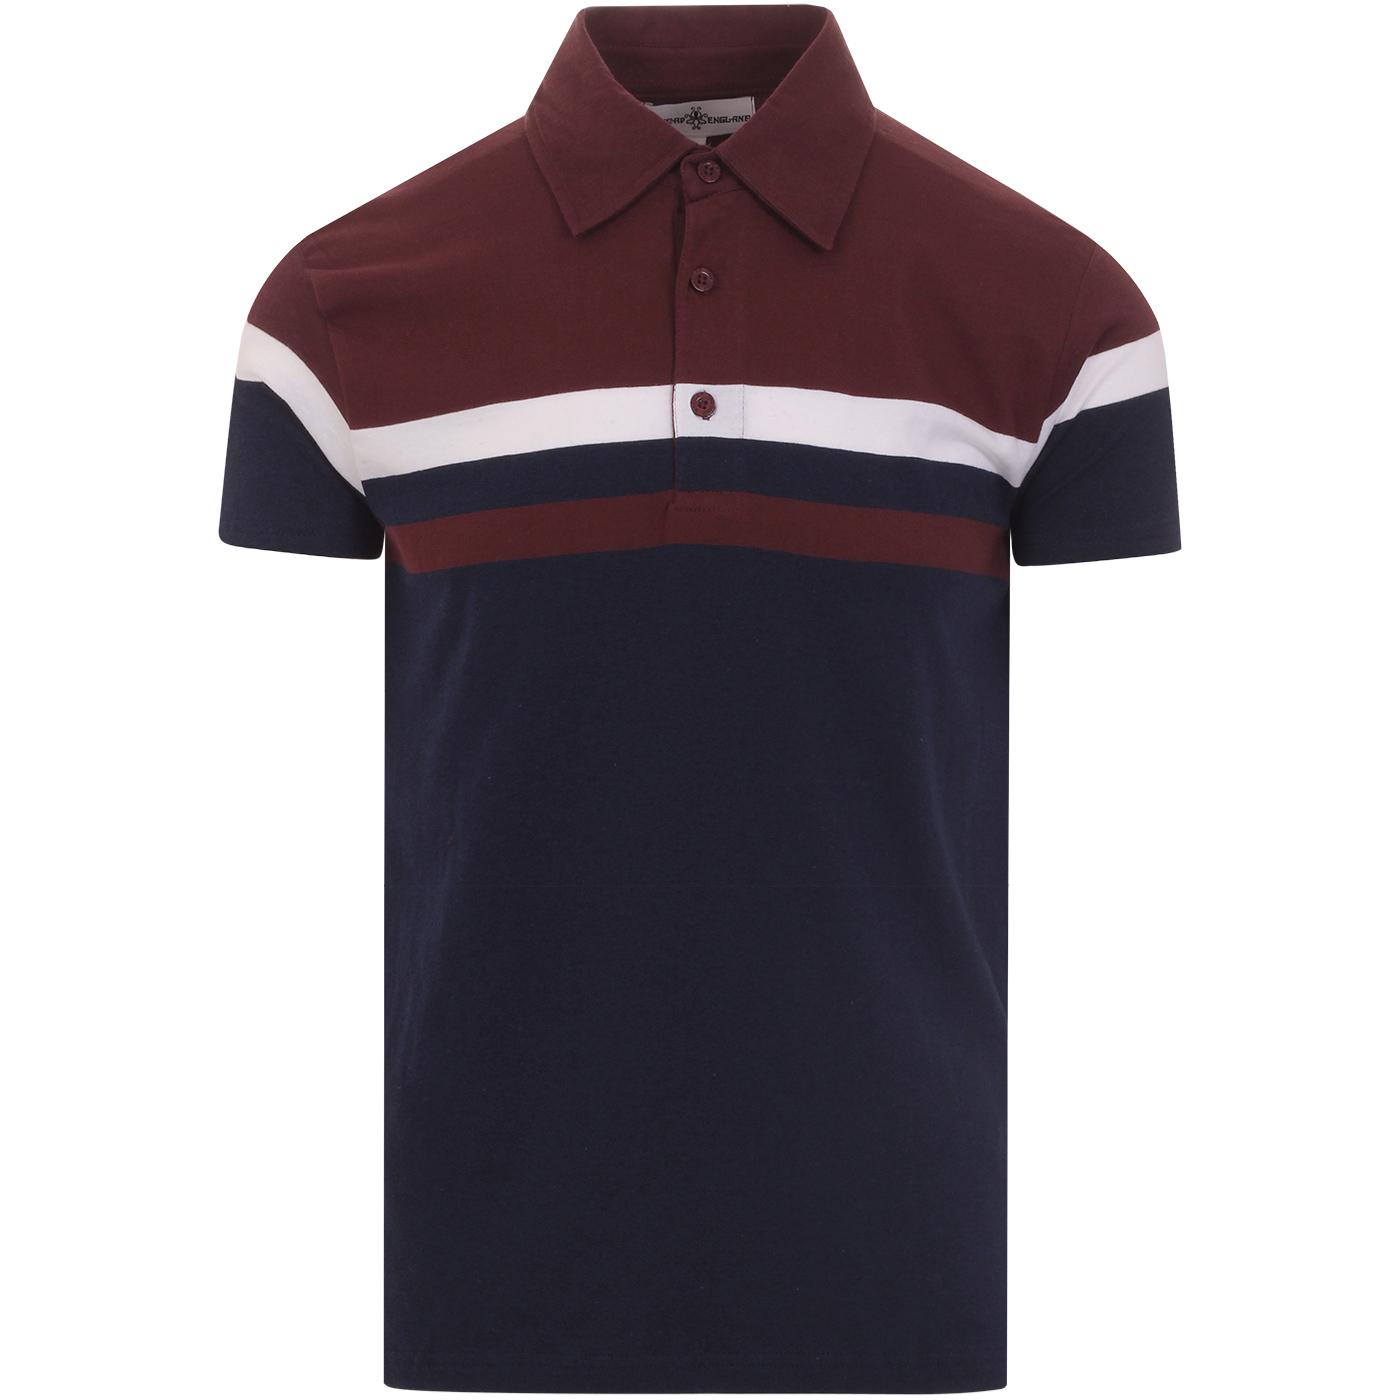 Jimmy The Gent MADCAP ENGLAND Mod Stripe Polo (P)